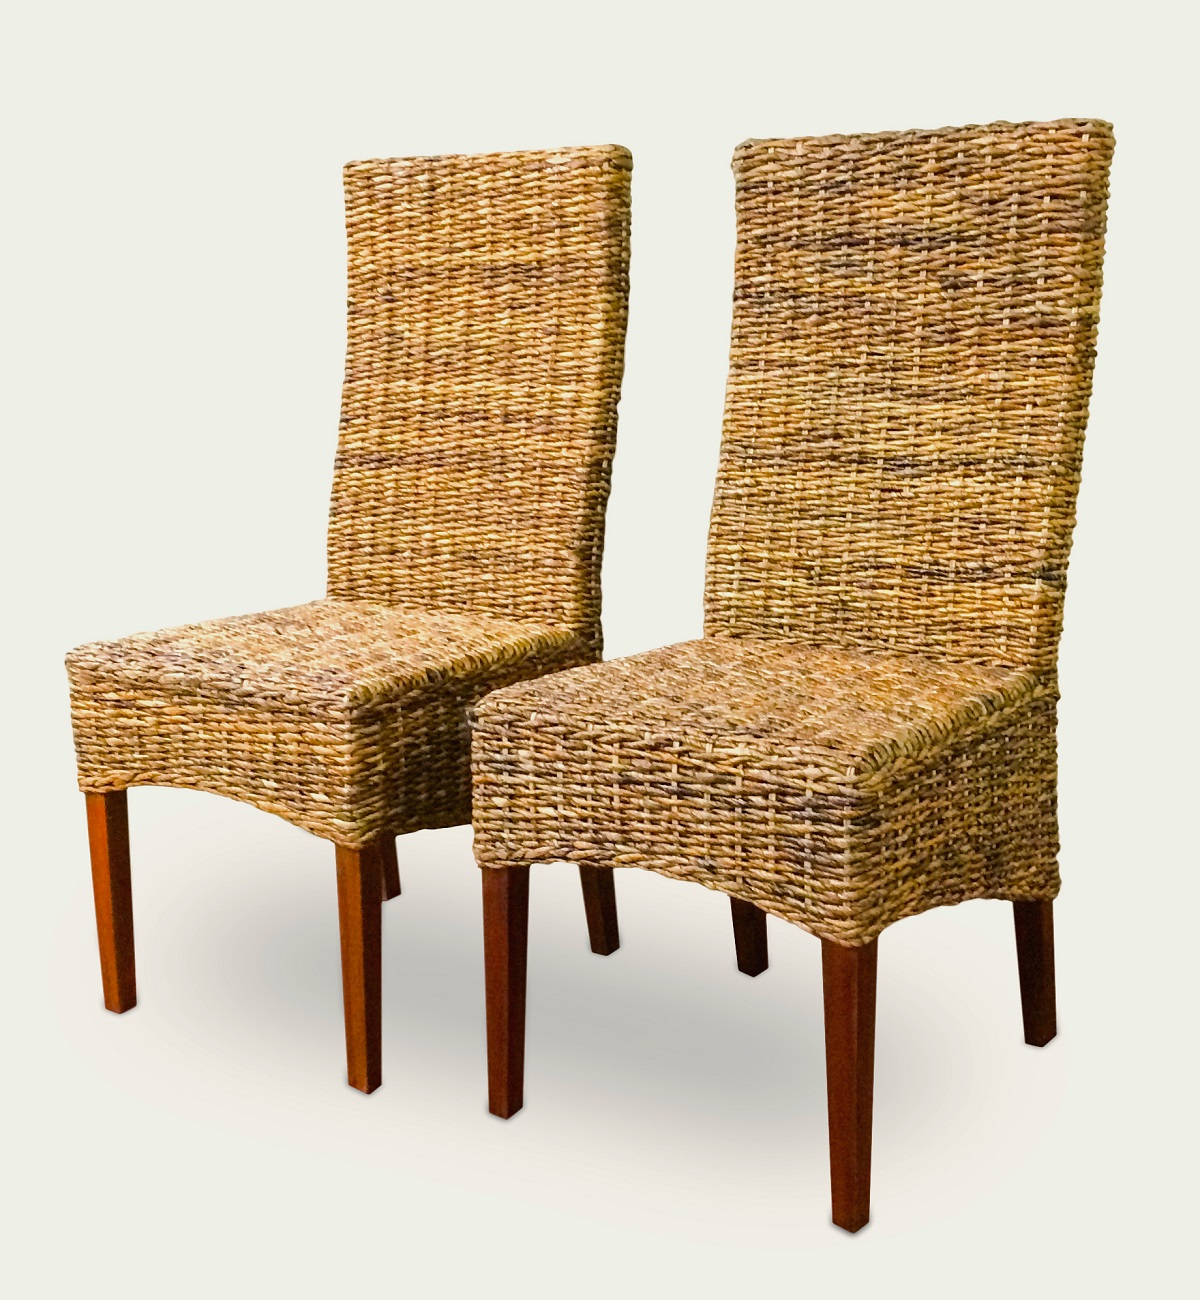 https://sep.yimg.com/ay/wickerparadise/two-paris-seagrass-dining-chair-3.png